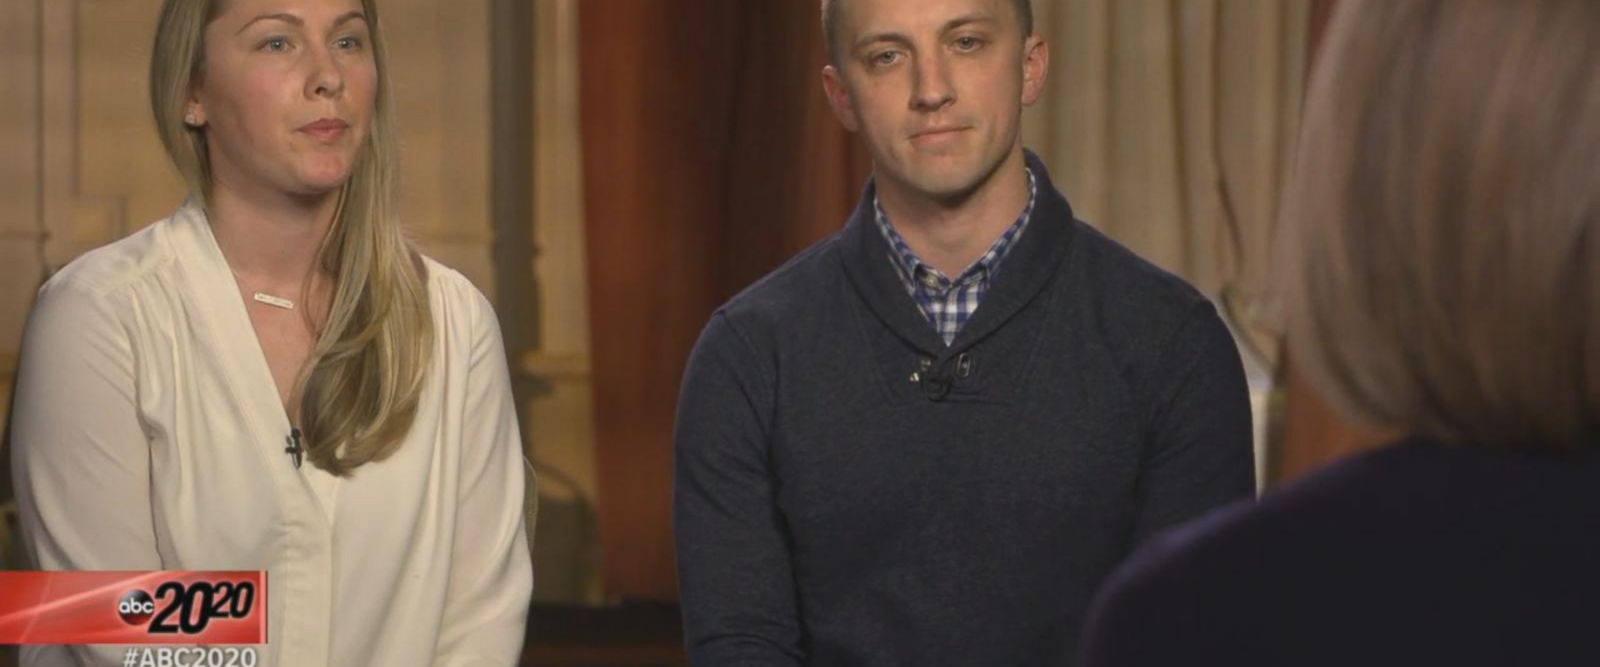 VIDEO: Couple in so-called 'Gone Girl' case believe there are co-conspirators out there